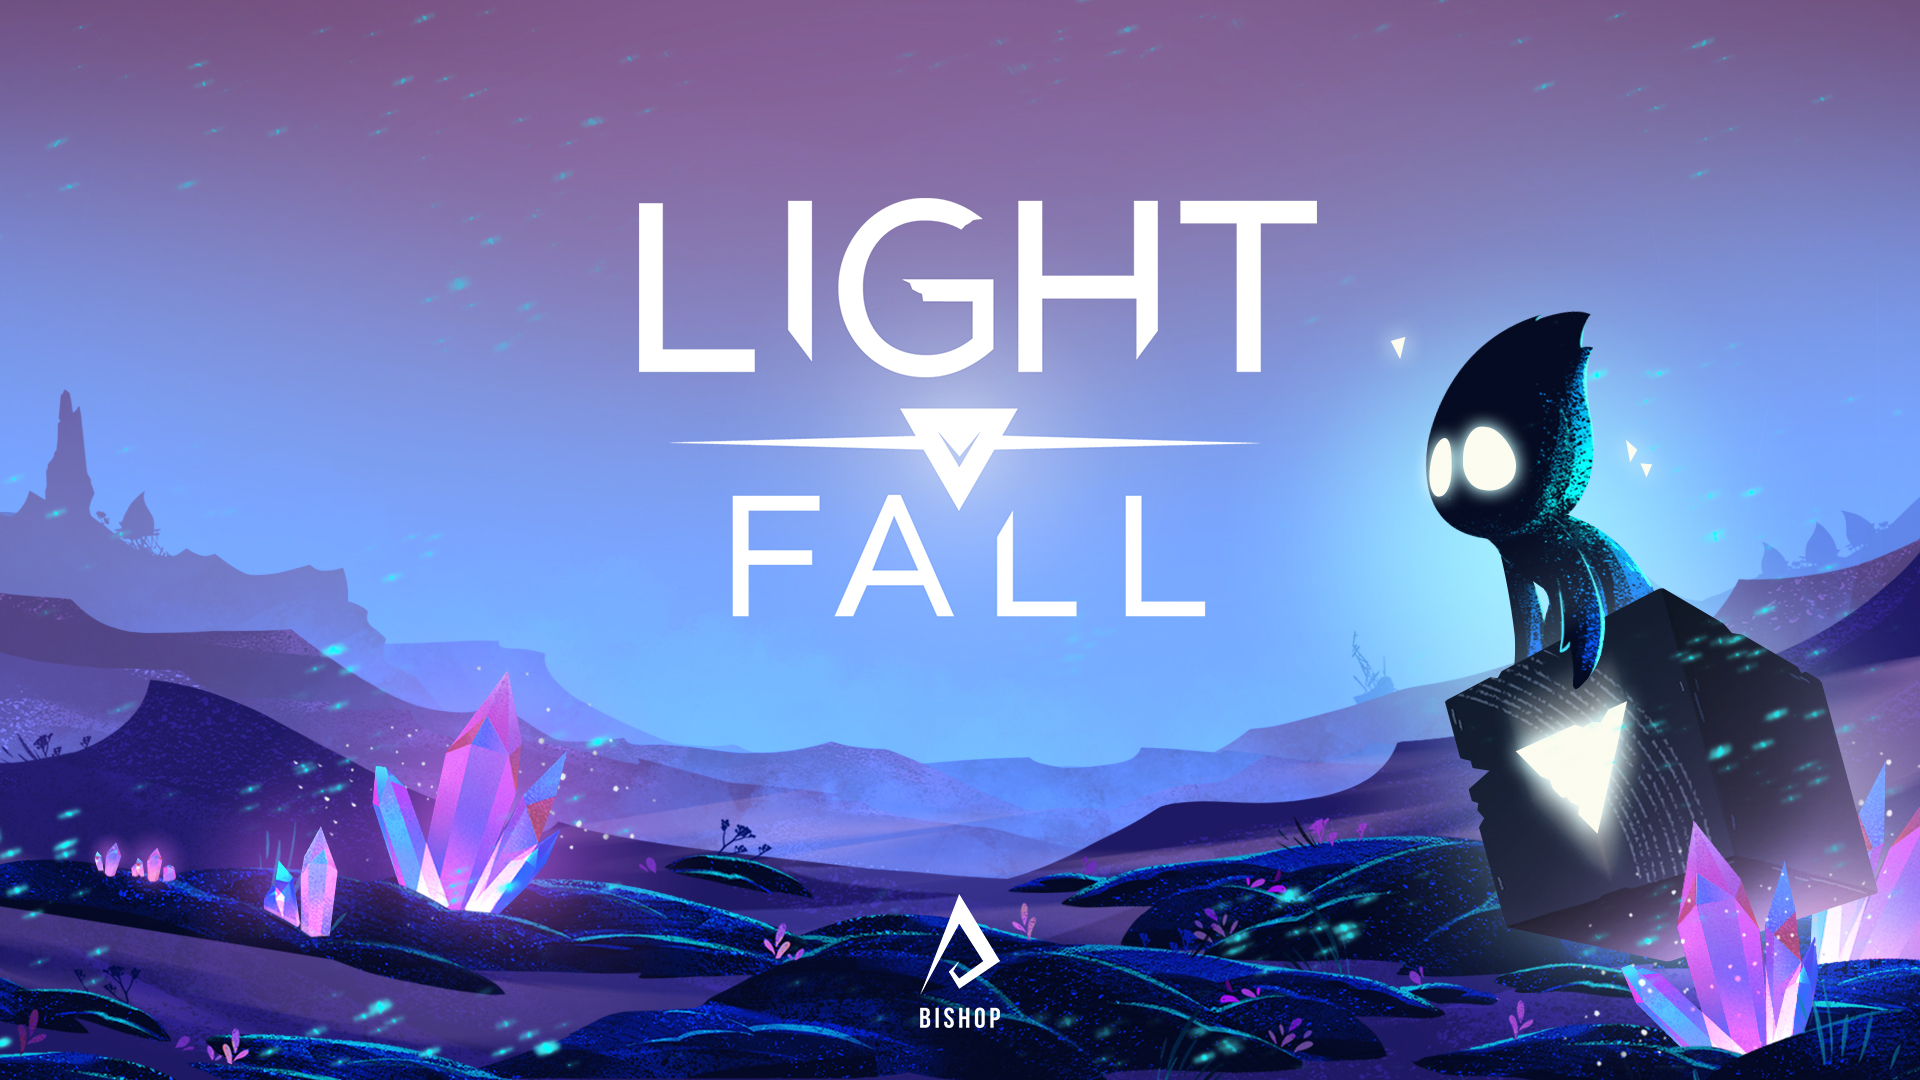 lightfall_01.jpg